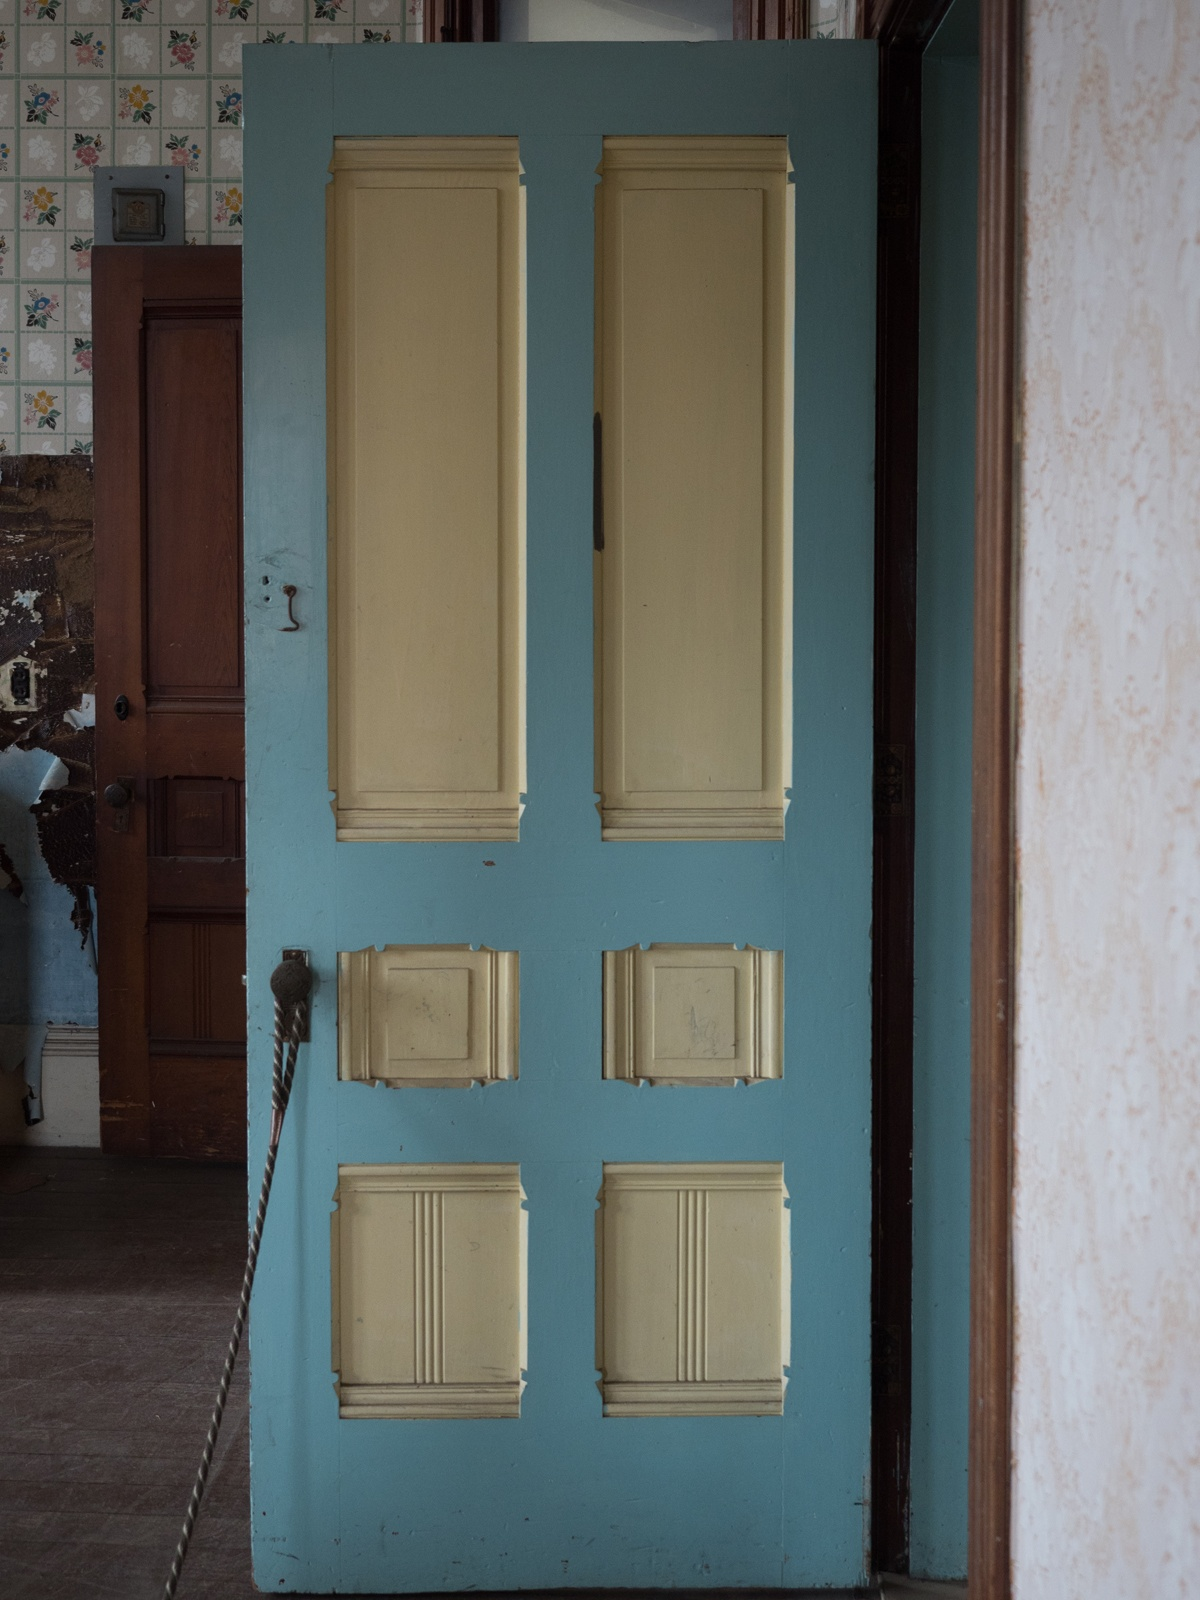 Colorful door with wallpaper in back.